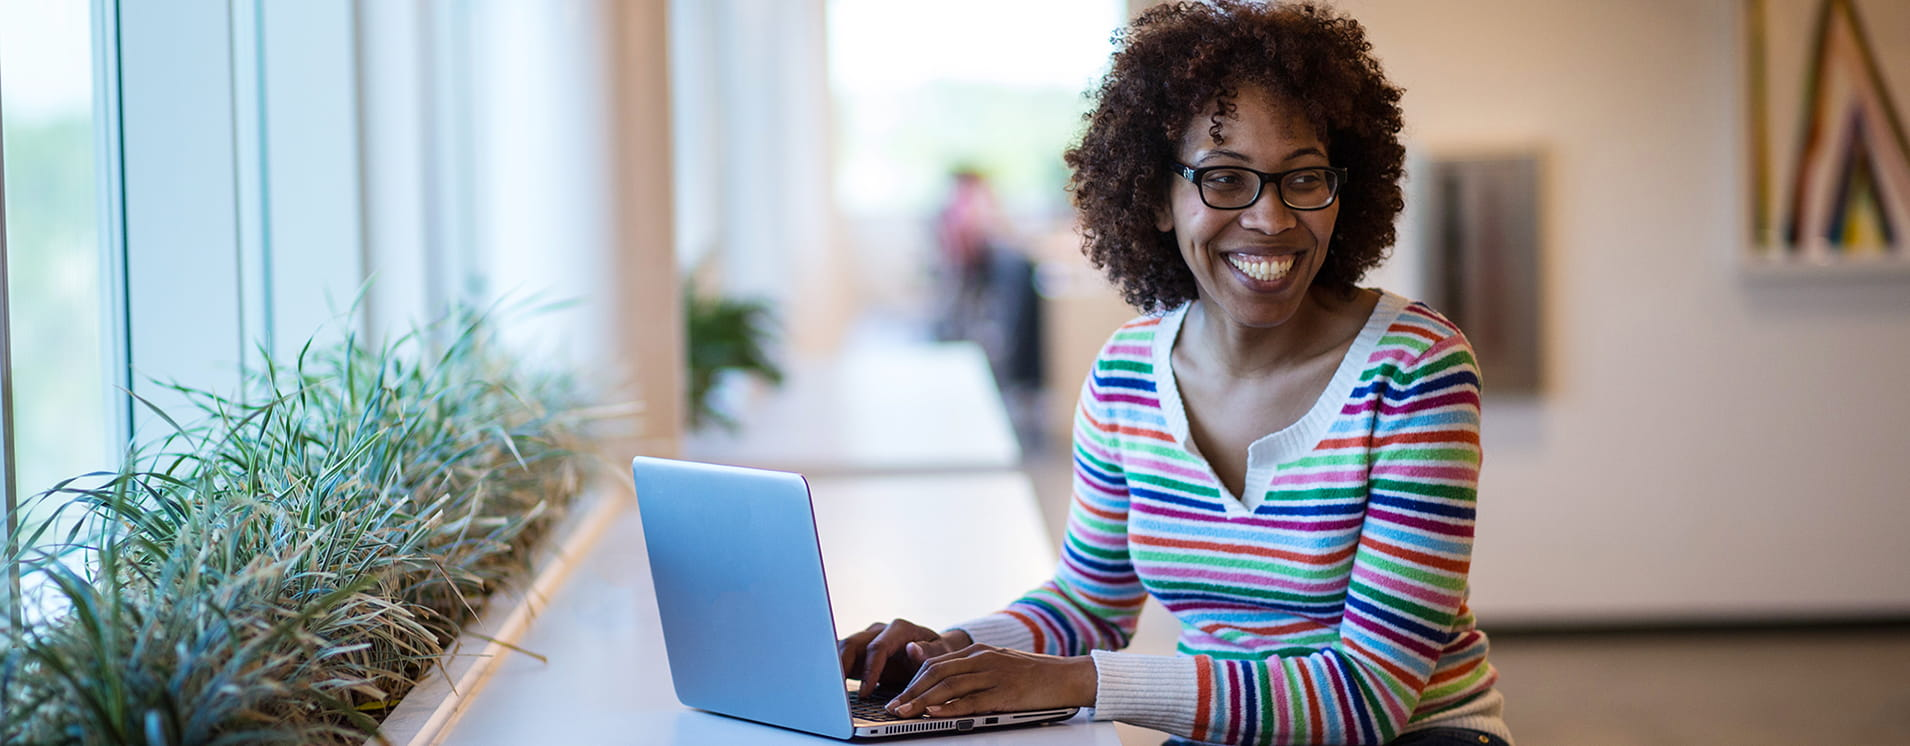 Woman smiling while sitting at her laptop